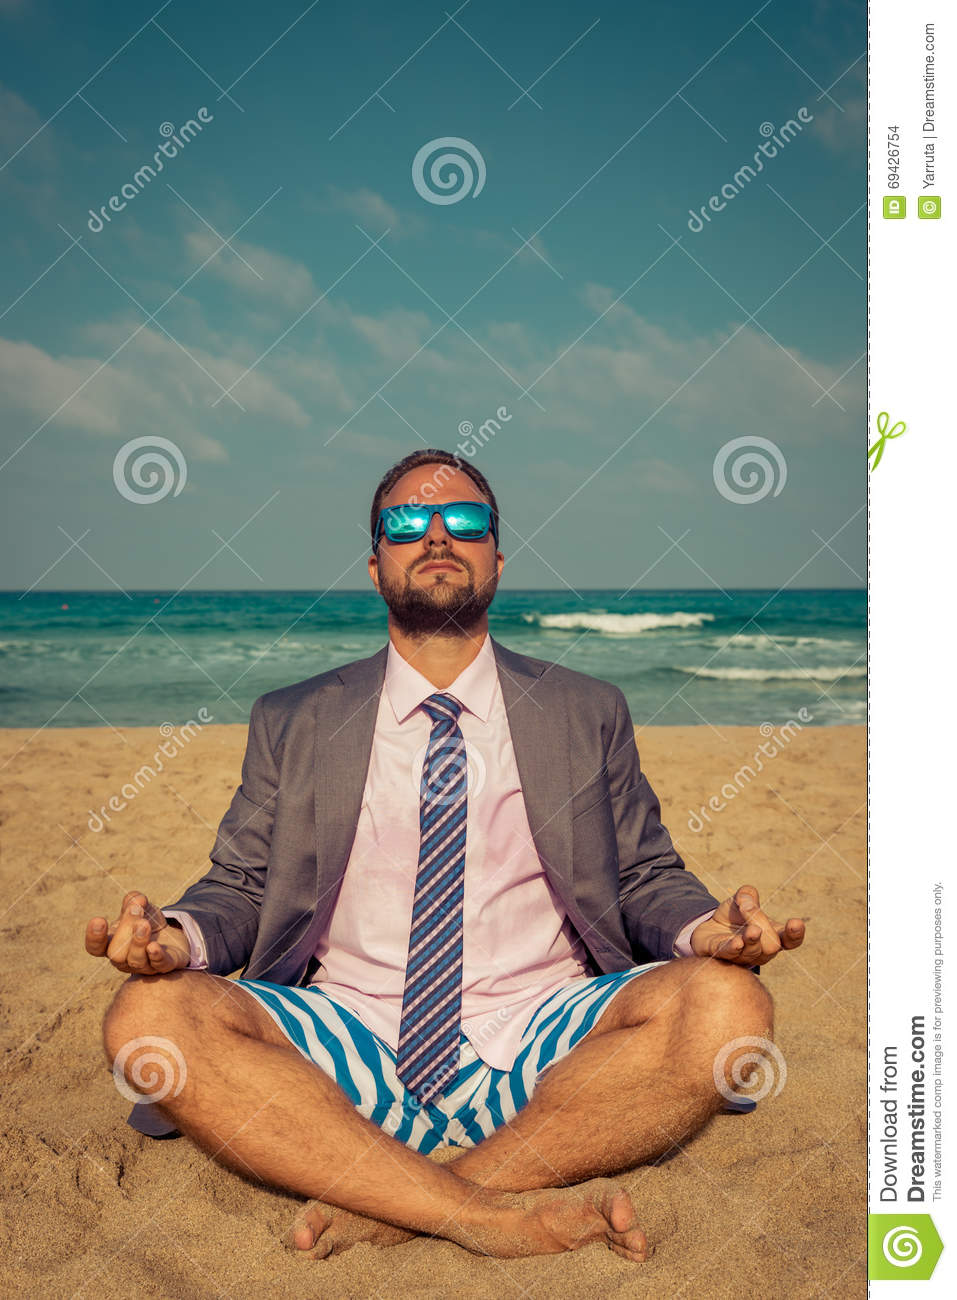 Funny Businessman On The Beach Stock Photo Image 69426754